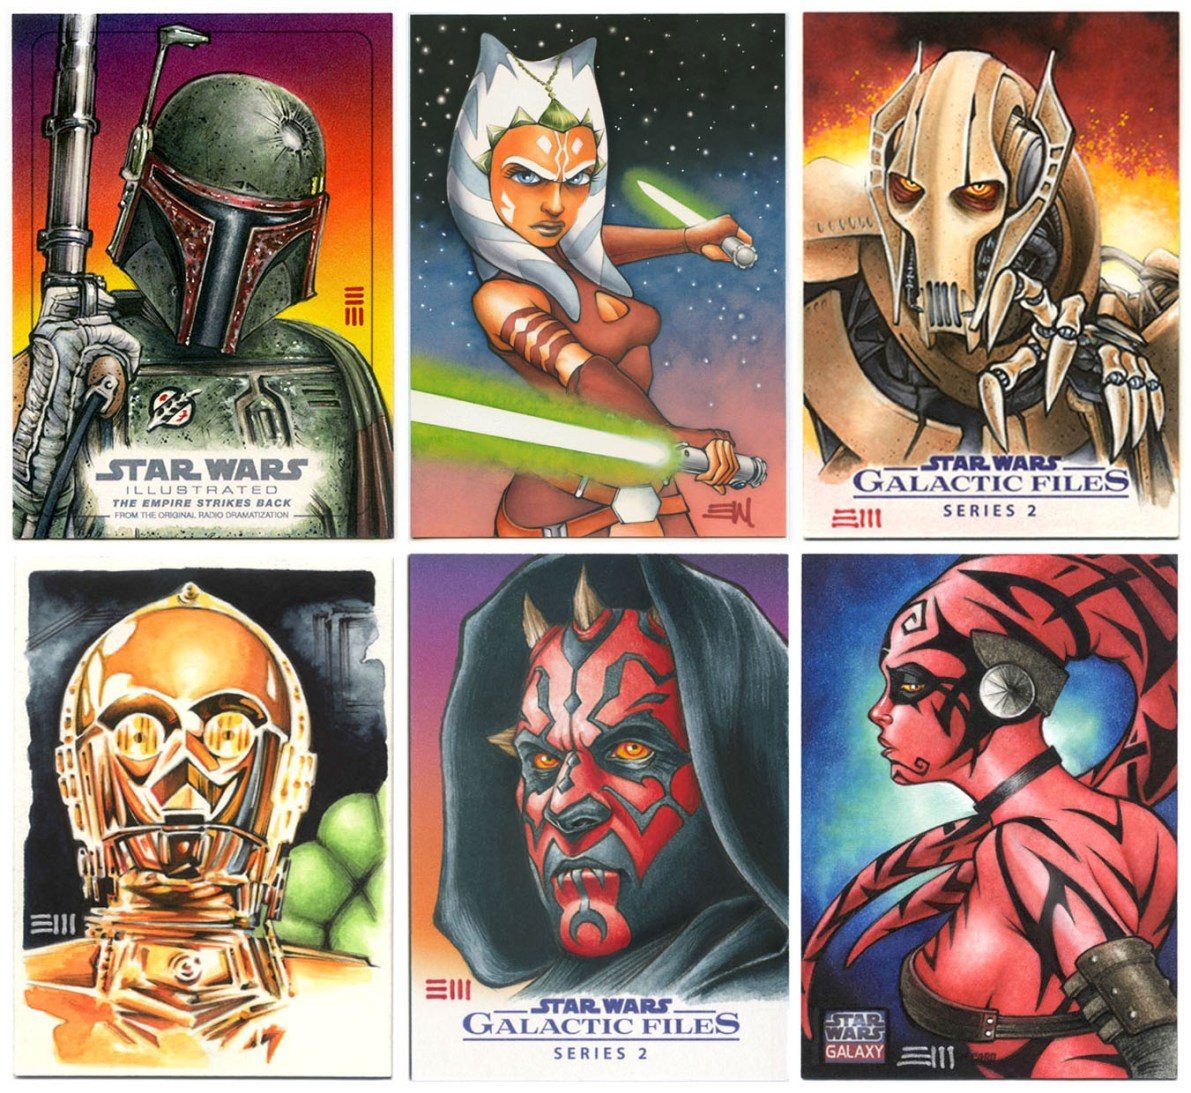 Erik_Maell_Star_Wars_SketchCards